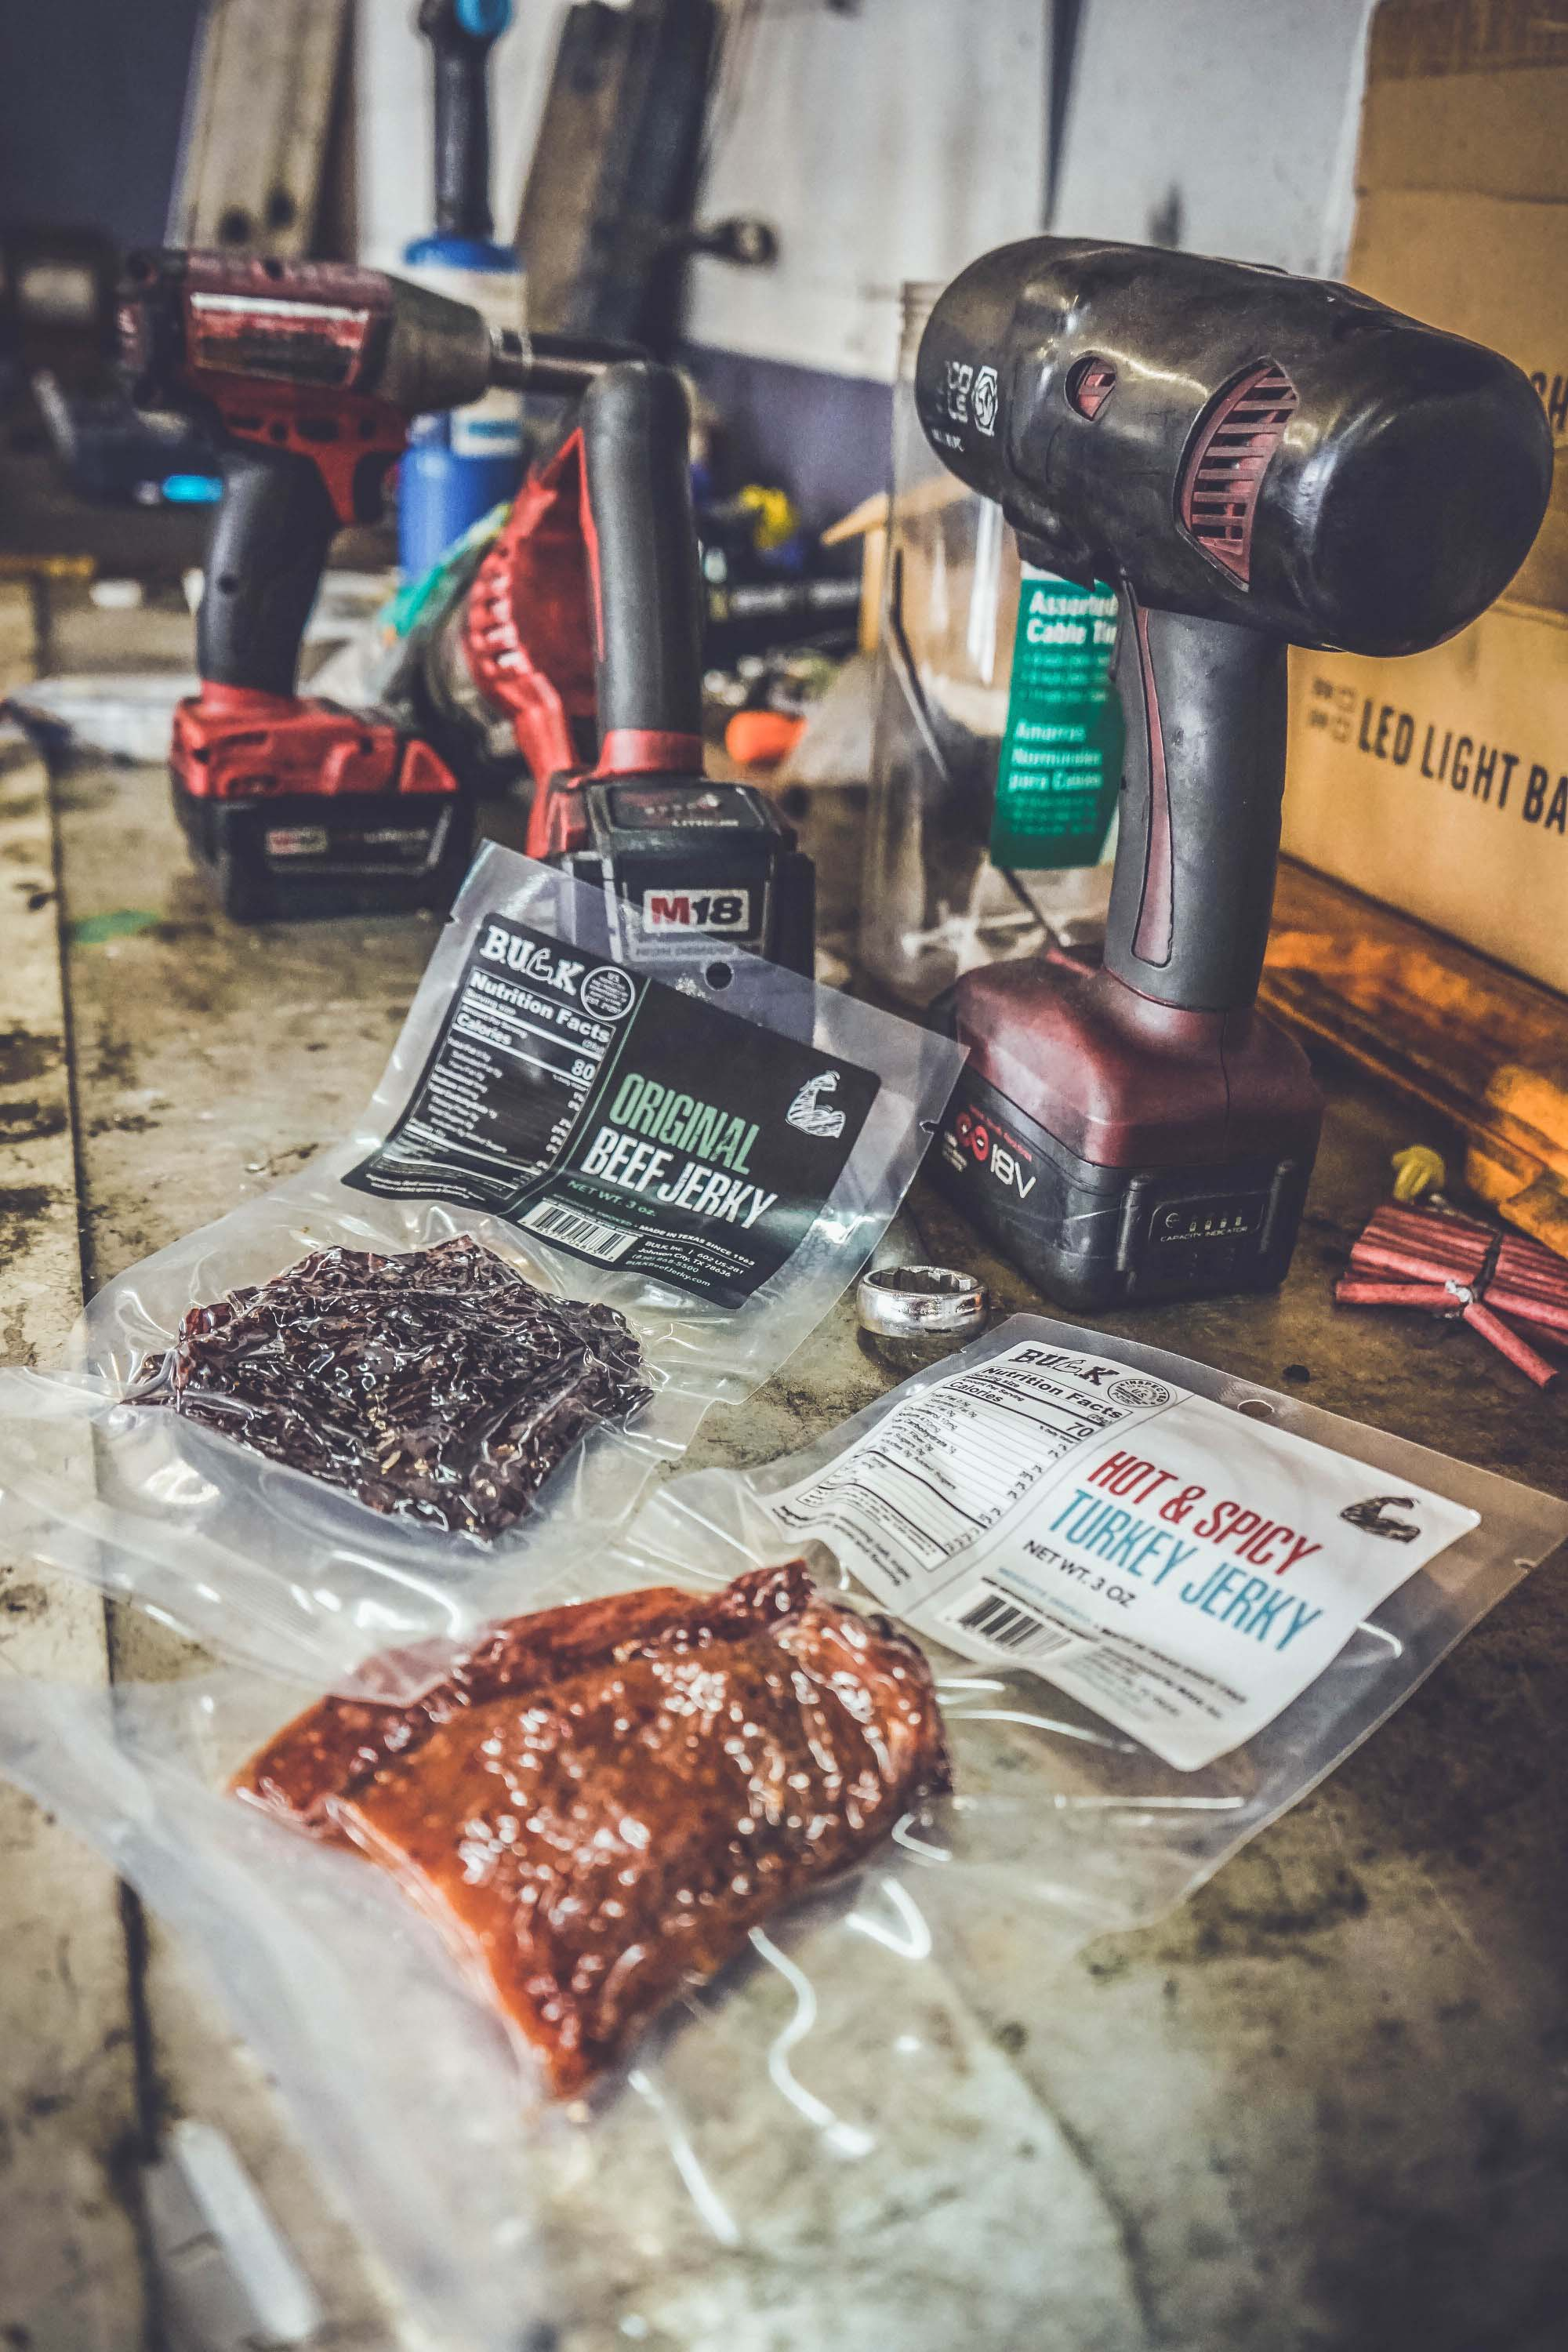 Texas Style Mobile Tool Dealer & Mechanic Beef Jerky